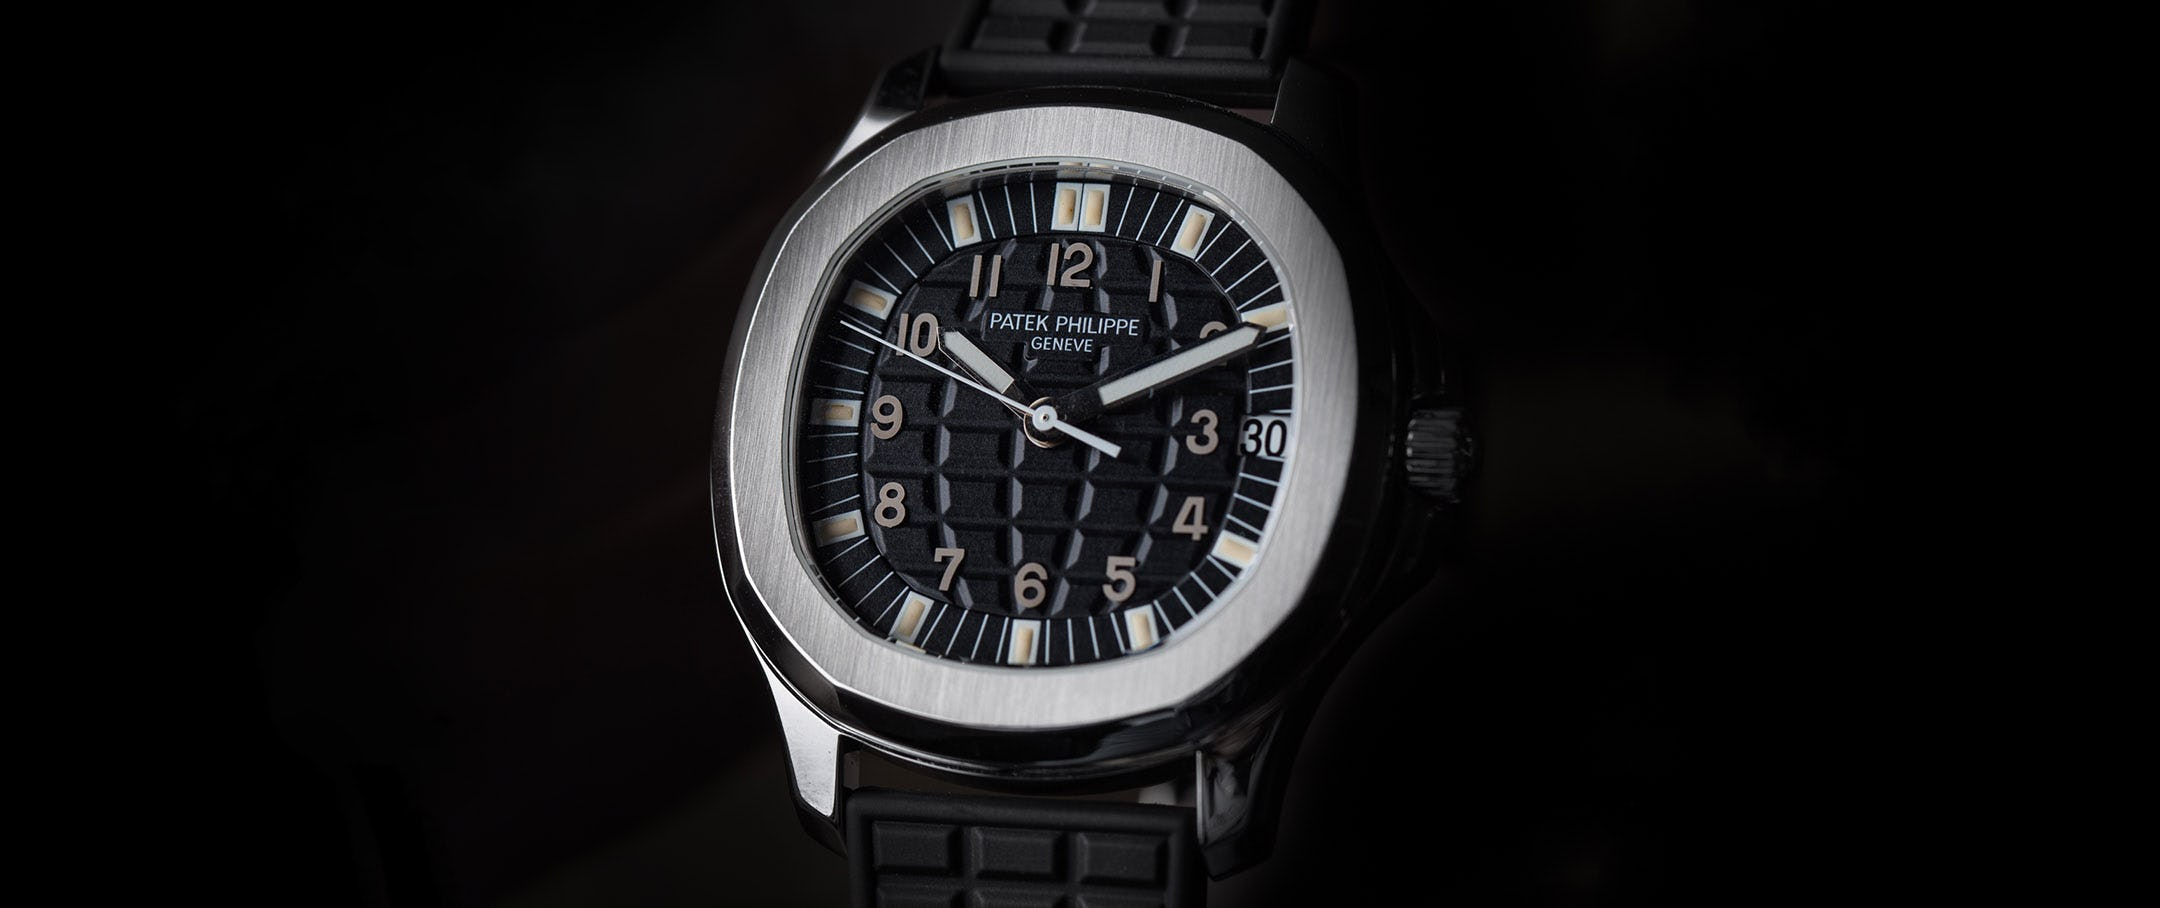 Drip or Drown? An Overview of the Patek Philippe Aquanaut